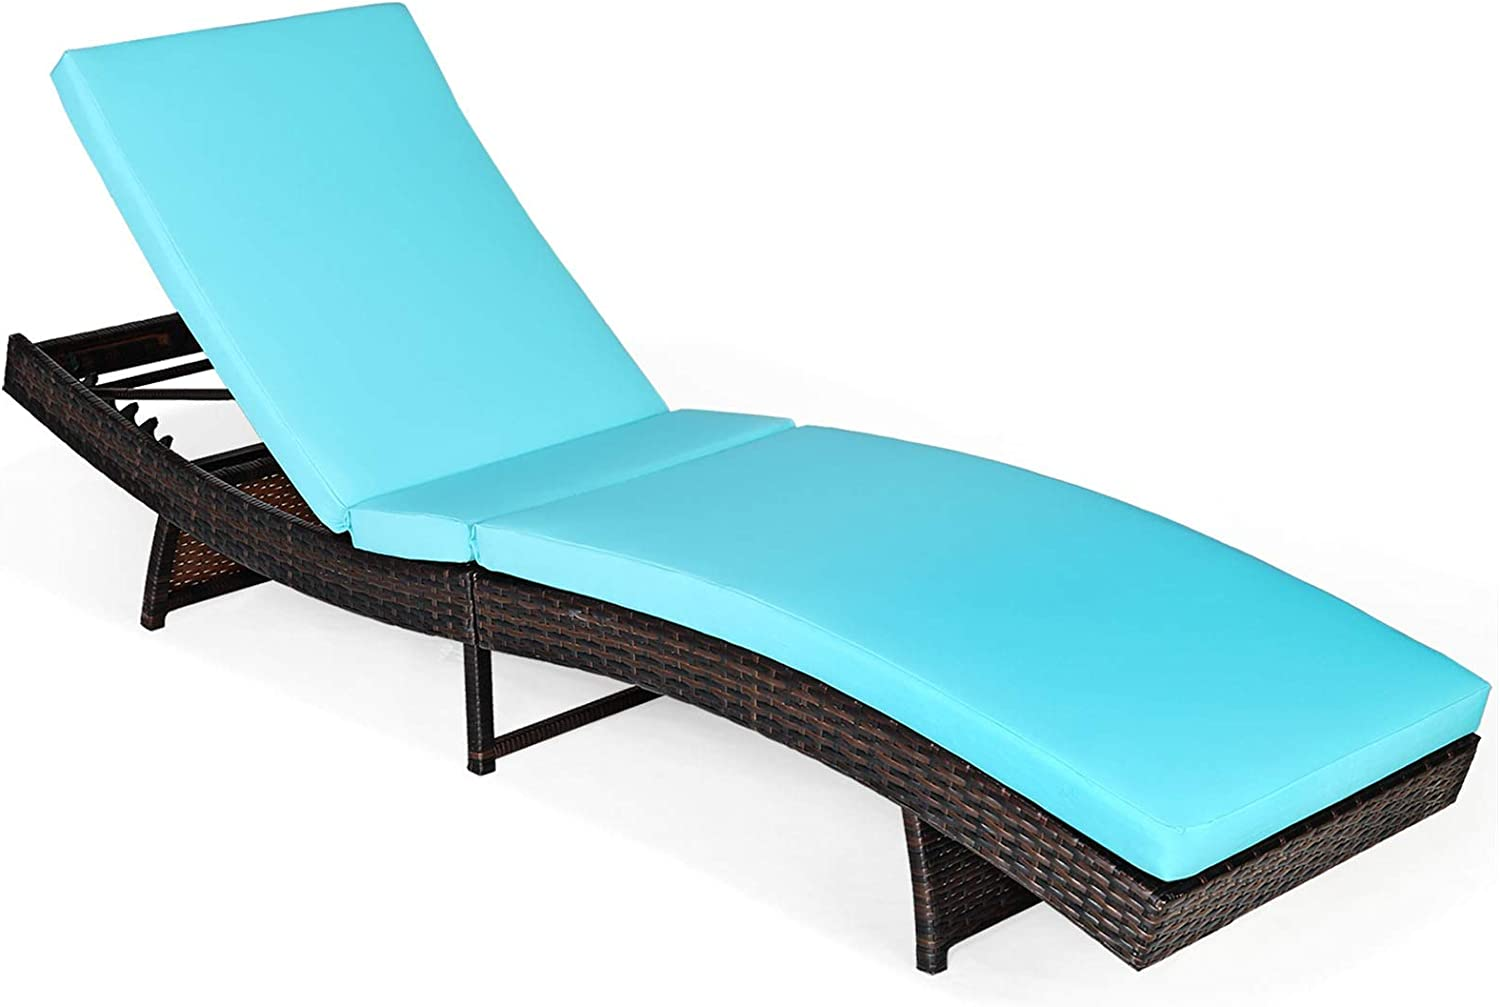 RELAX4LIFE Chaise Lounge Chair Recliner Patio Adjustable Folding Reclining Wicker Chair with 5 Backrest Positions, Removable Upholster for Pool, Garden Outdoor PE Rattan Reclining Chair(1, Turquoise)